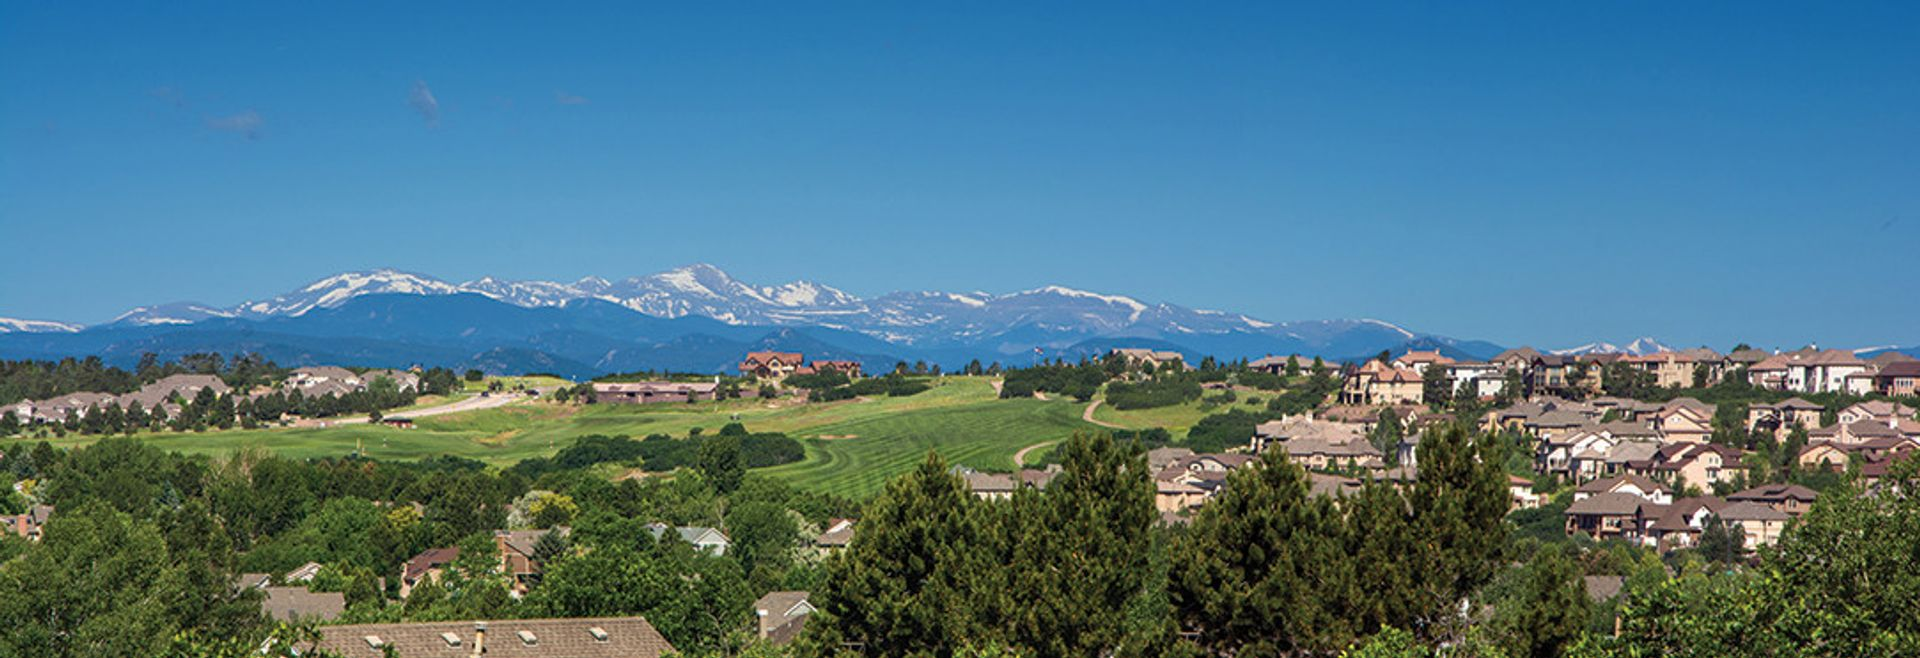 View of Castle Pines, Colorado in the Denver area